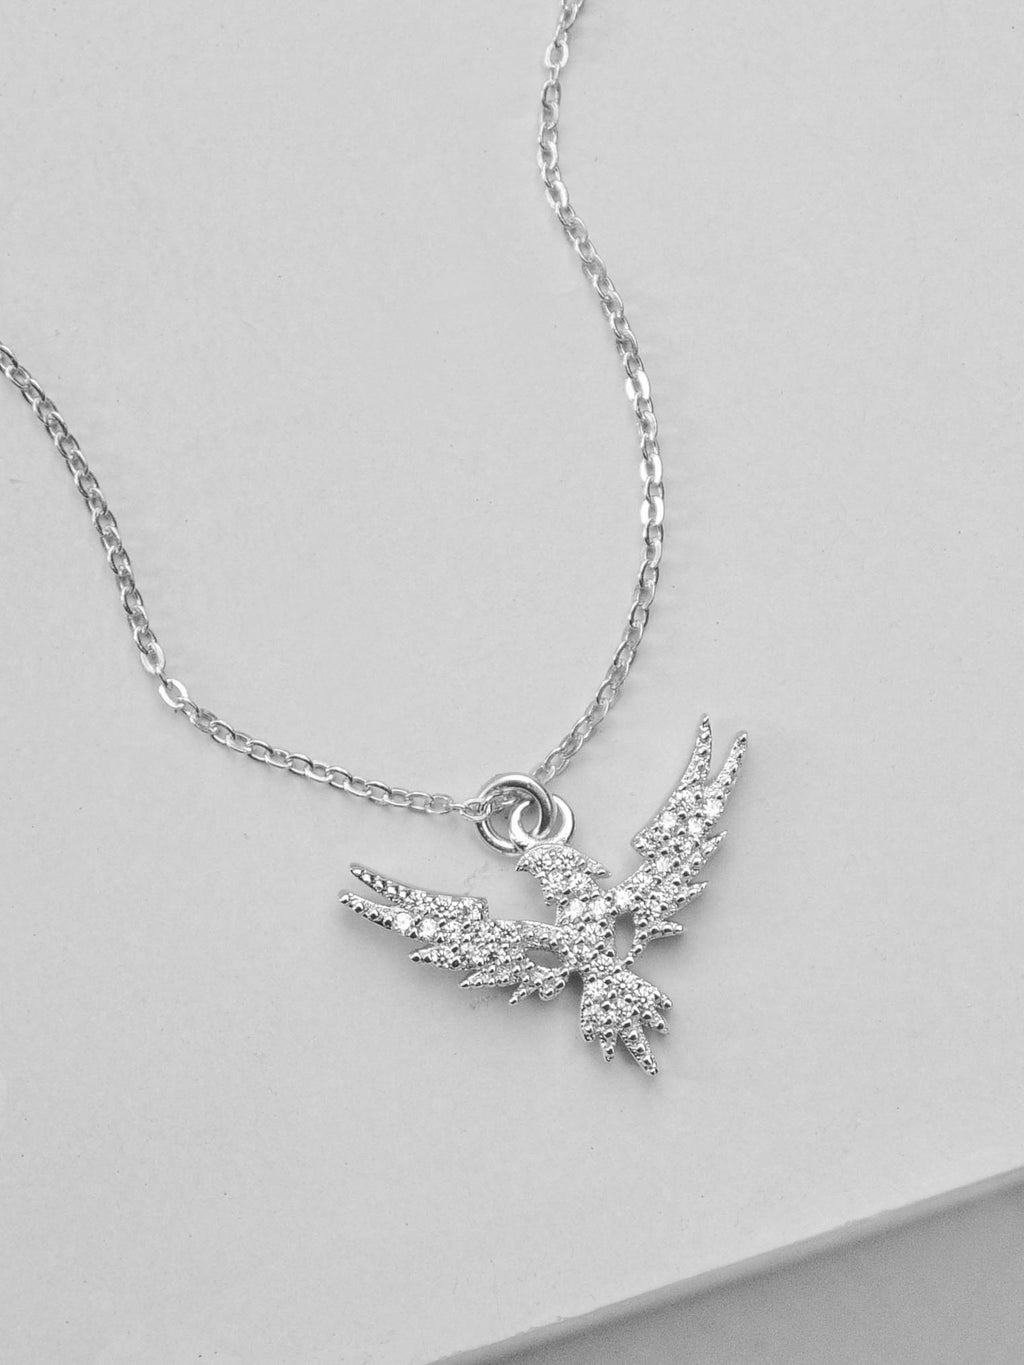 Sterling Silver Phoenix Charm Necklace by The Faint Hearted Jewelry